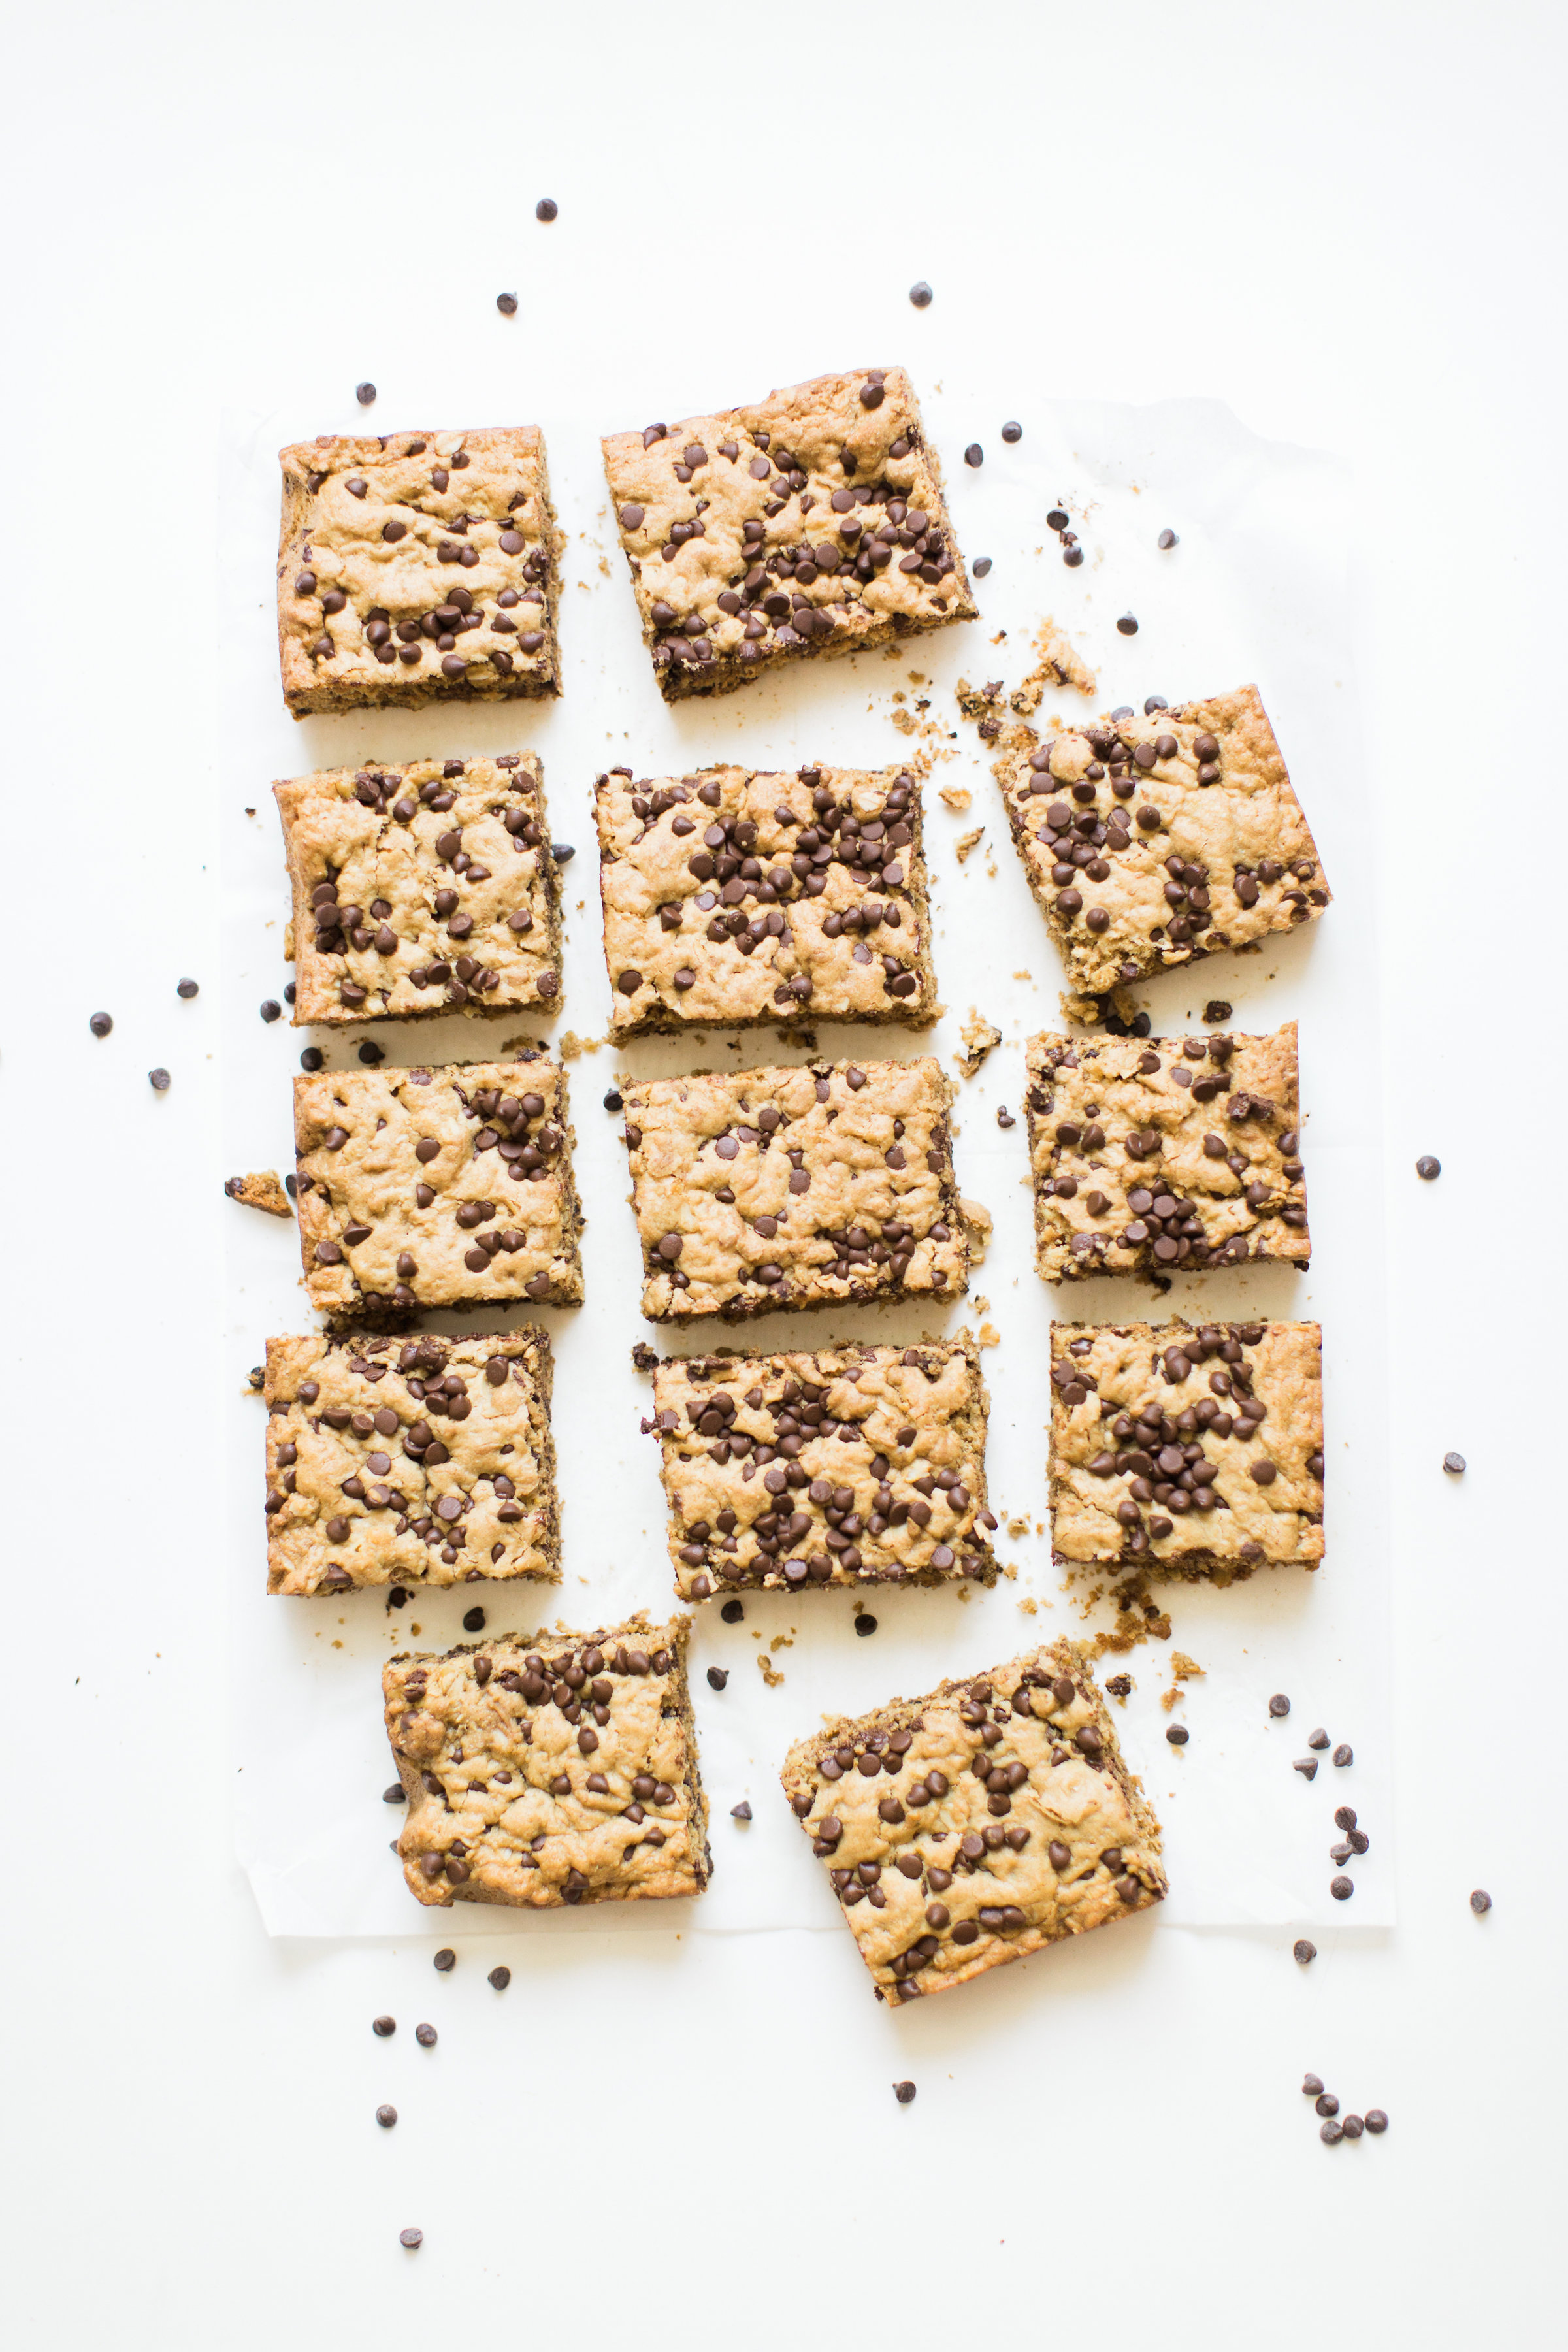 Delicious chocolate chip oatmeal cookies made extra simple by baking them up in a big batch of bars, these super moistchocolate chip oatmeal cookie bars are a favorite of our whole family, and for good reason! #oatmealcookies #oatmealcookiebars #cookiebars #cookierecipe #oatmealcookierecipe #dairyfree | glitterinc.com | @glitterinc